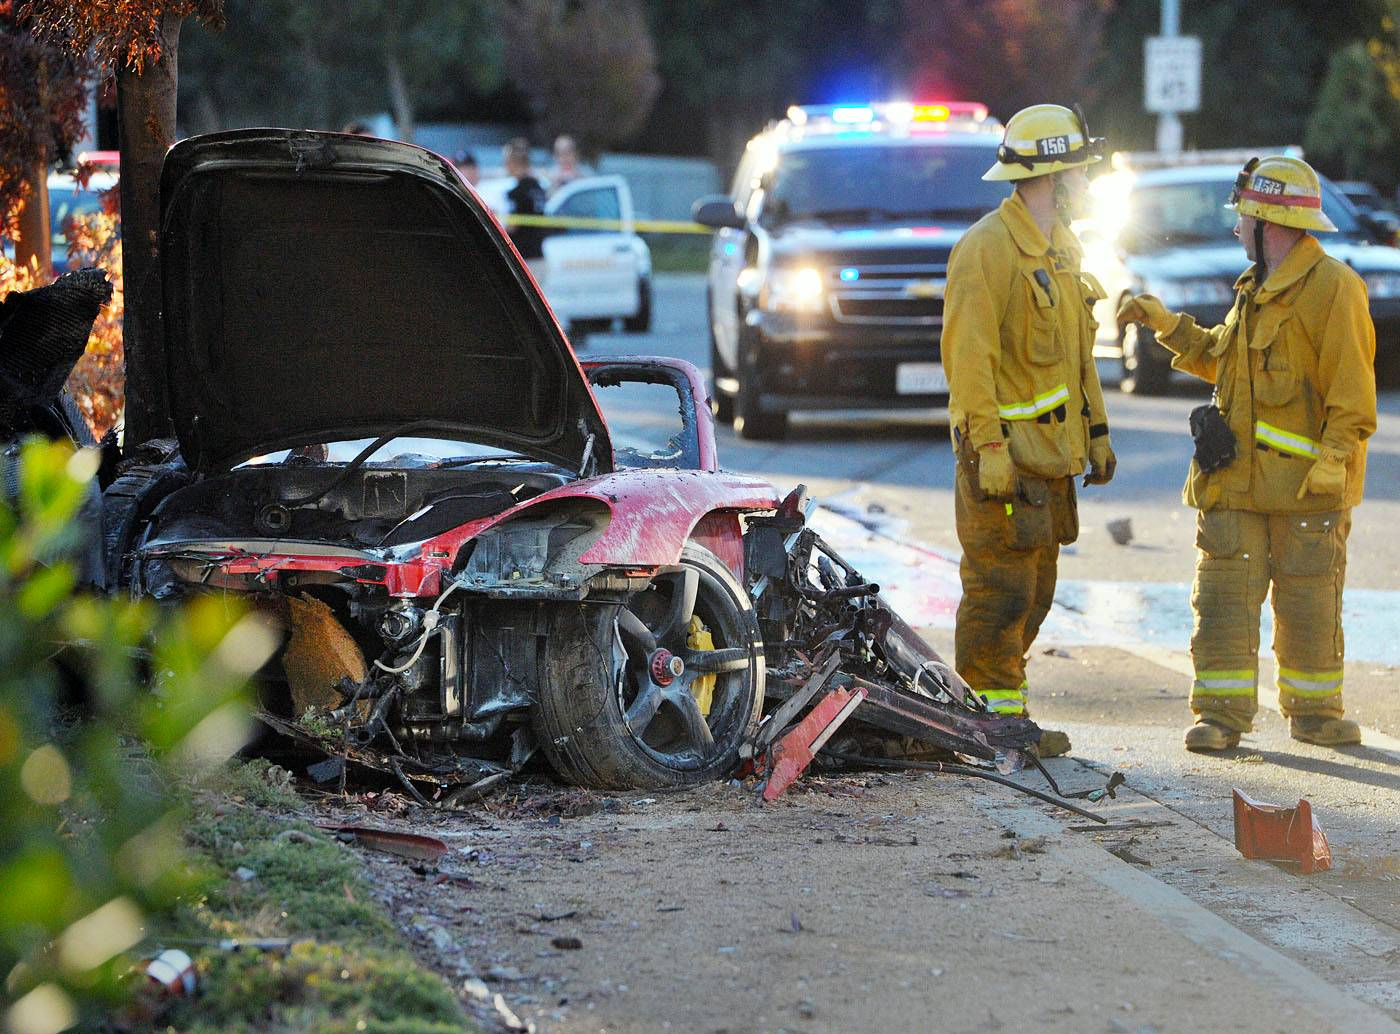 Firefighters work next to the wreckage of a Porsche that crashed into a light pole killing actor Paul Walker and his friend Roger Rodas in Valencia, Calif. Crash investigators have determined that the Porsche was traveling up to 94 mph when it went out of control.